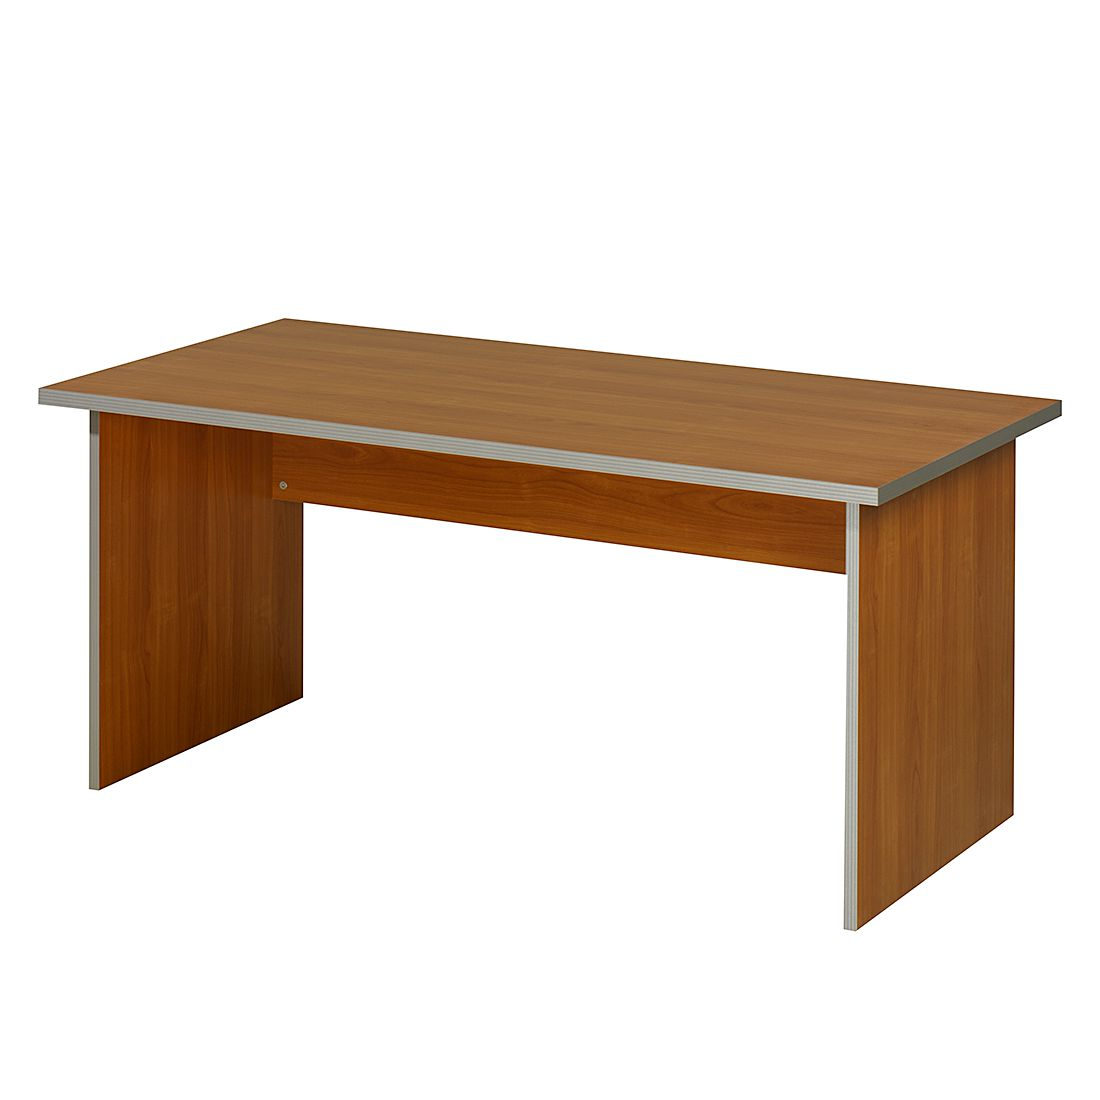 Home 24 - Table de bureau kirk vii - imitation merisier - plateau de table : 160 x 80 cm, wellemöbel